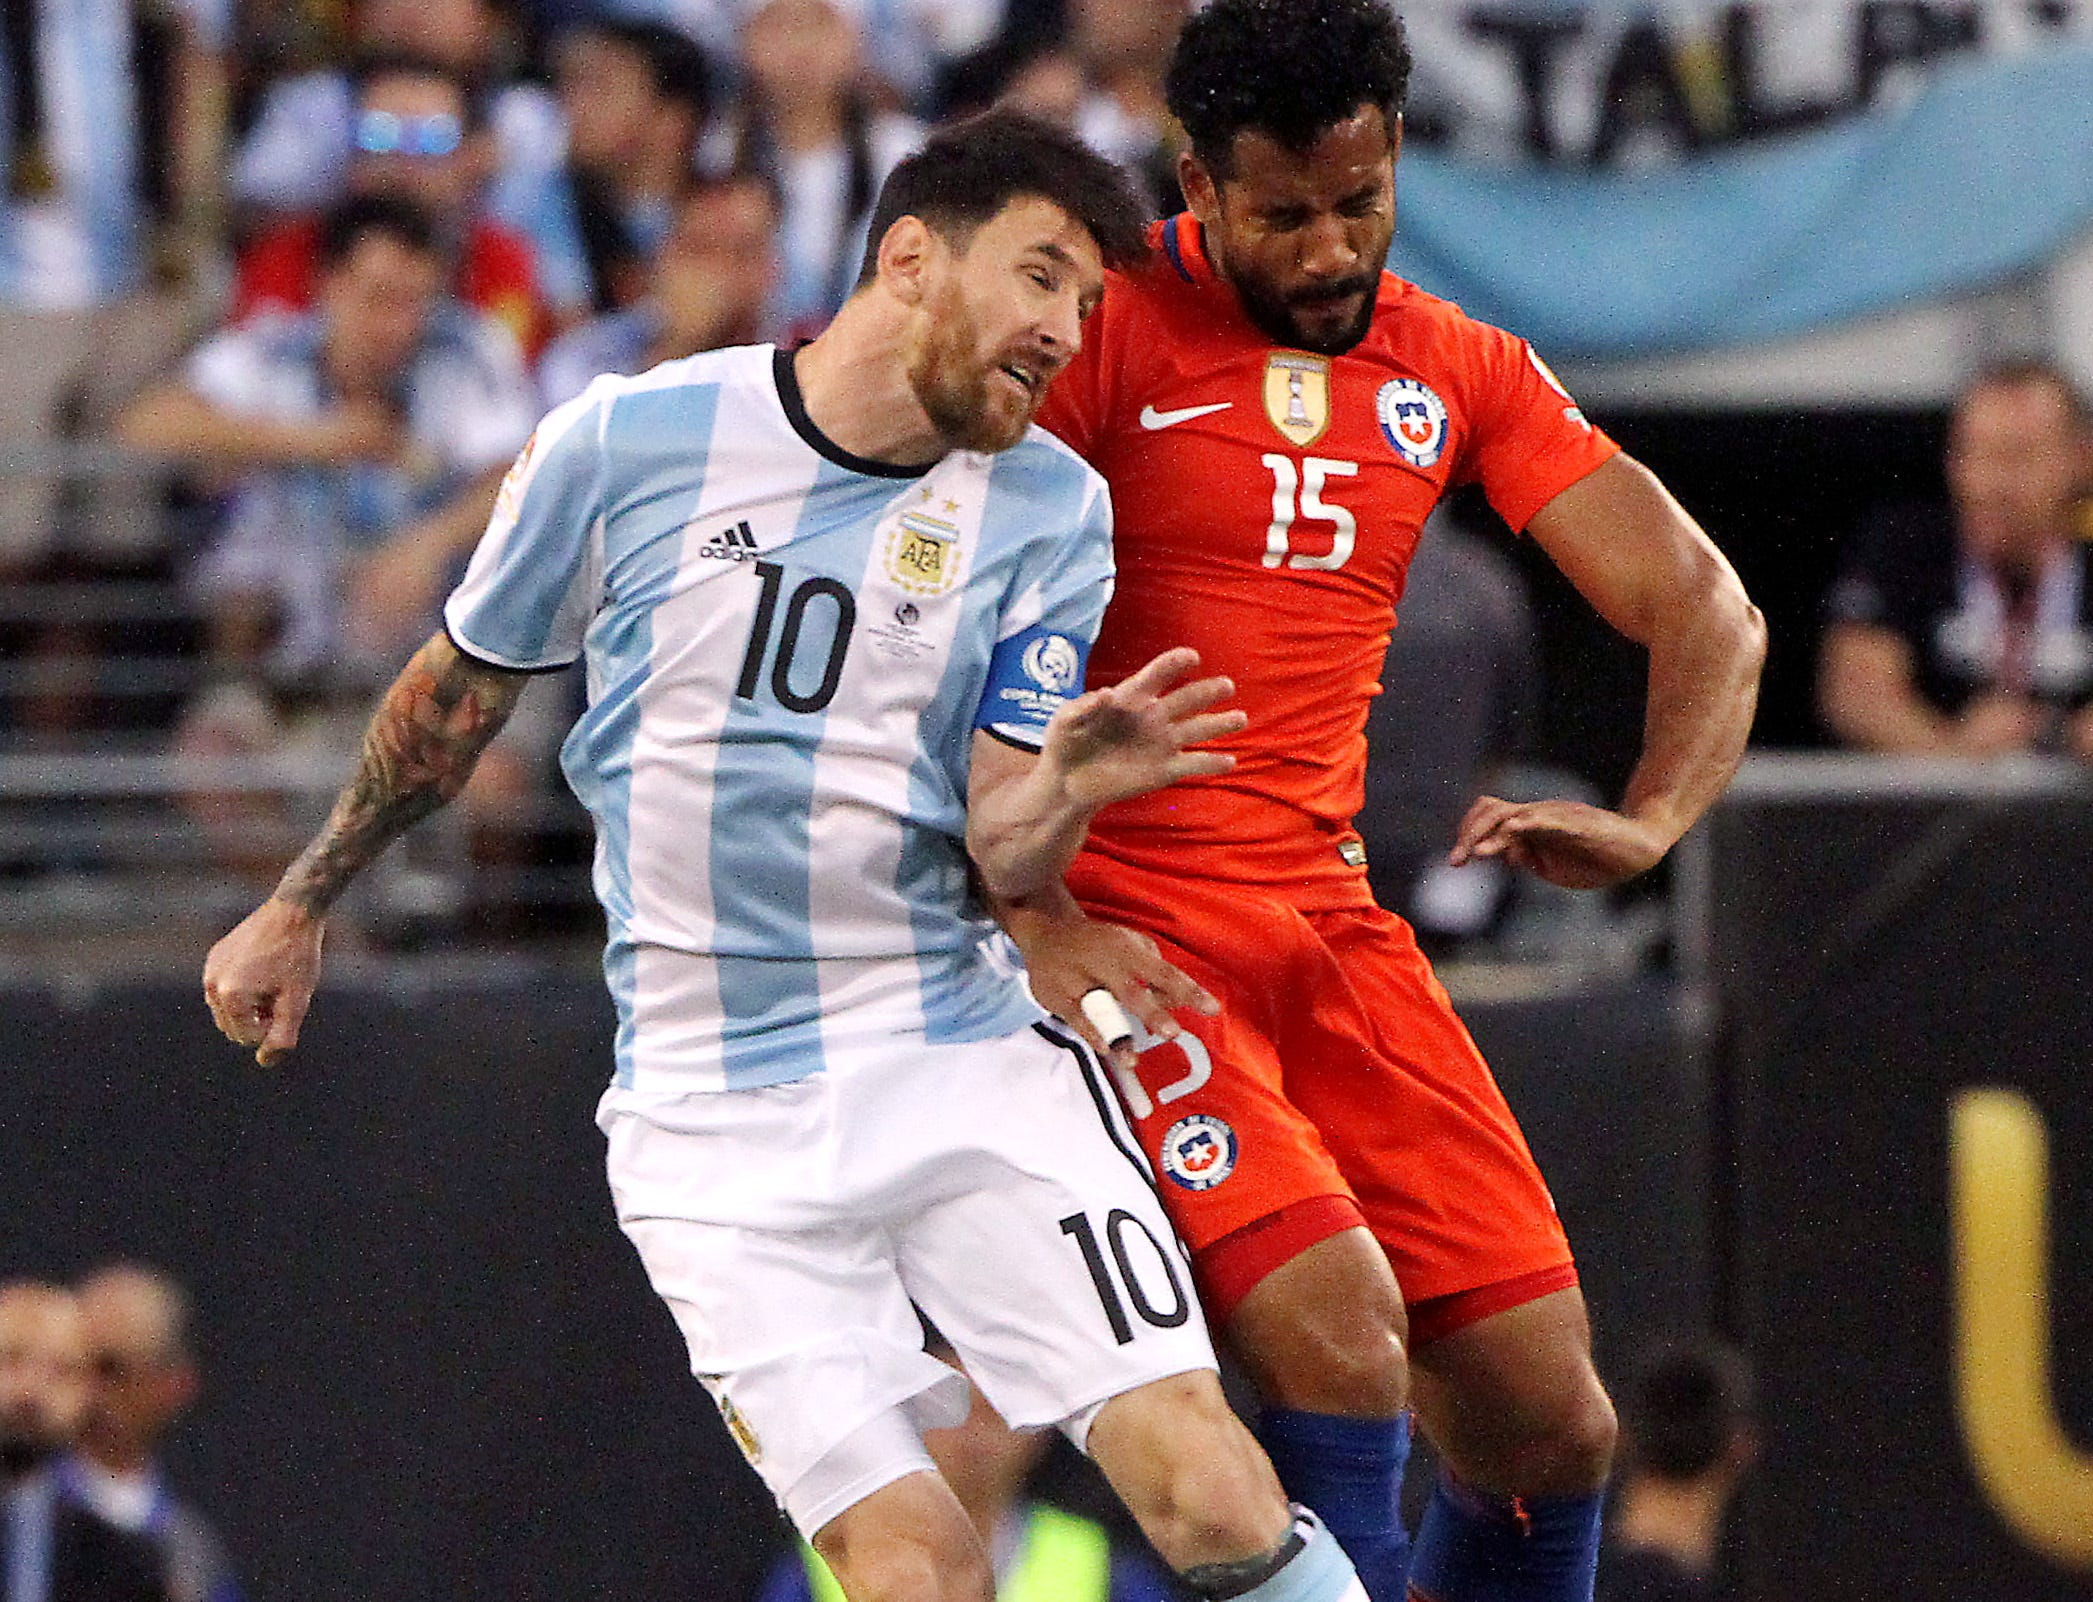 Chile beats Argentina on penalty kicks after scoreless 120 minutes to win the Copa America title at MetLife Stadium in East Rutherford, NJ., June 26, 2016, East Rutherford, NJ